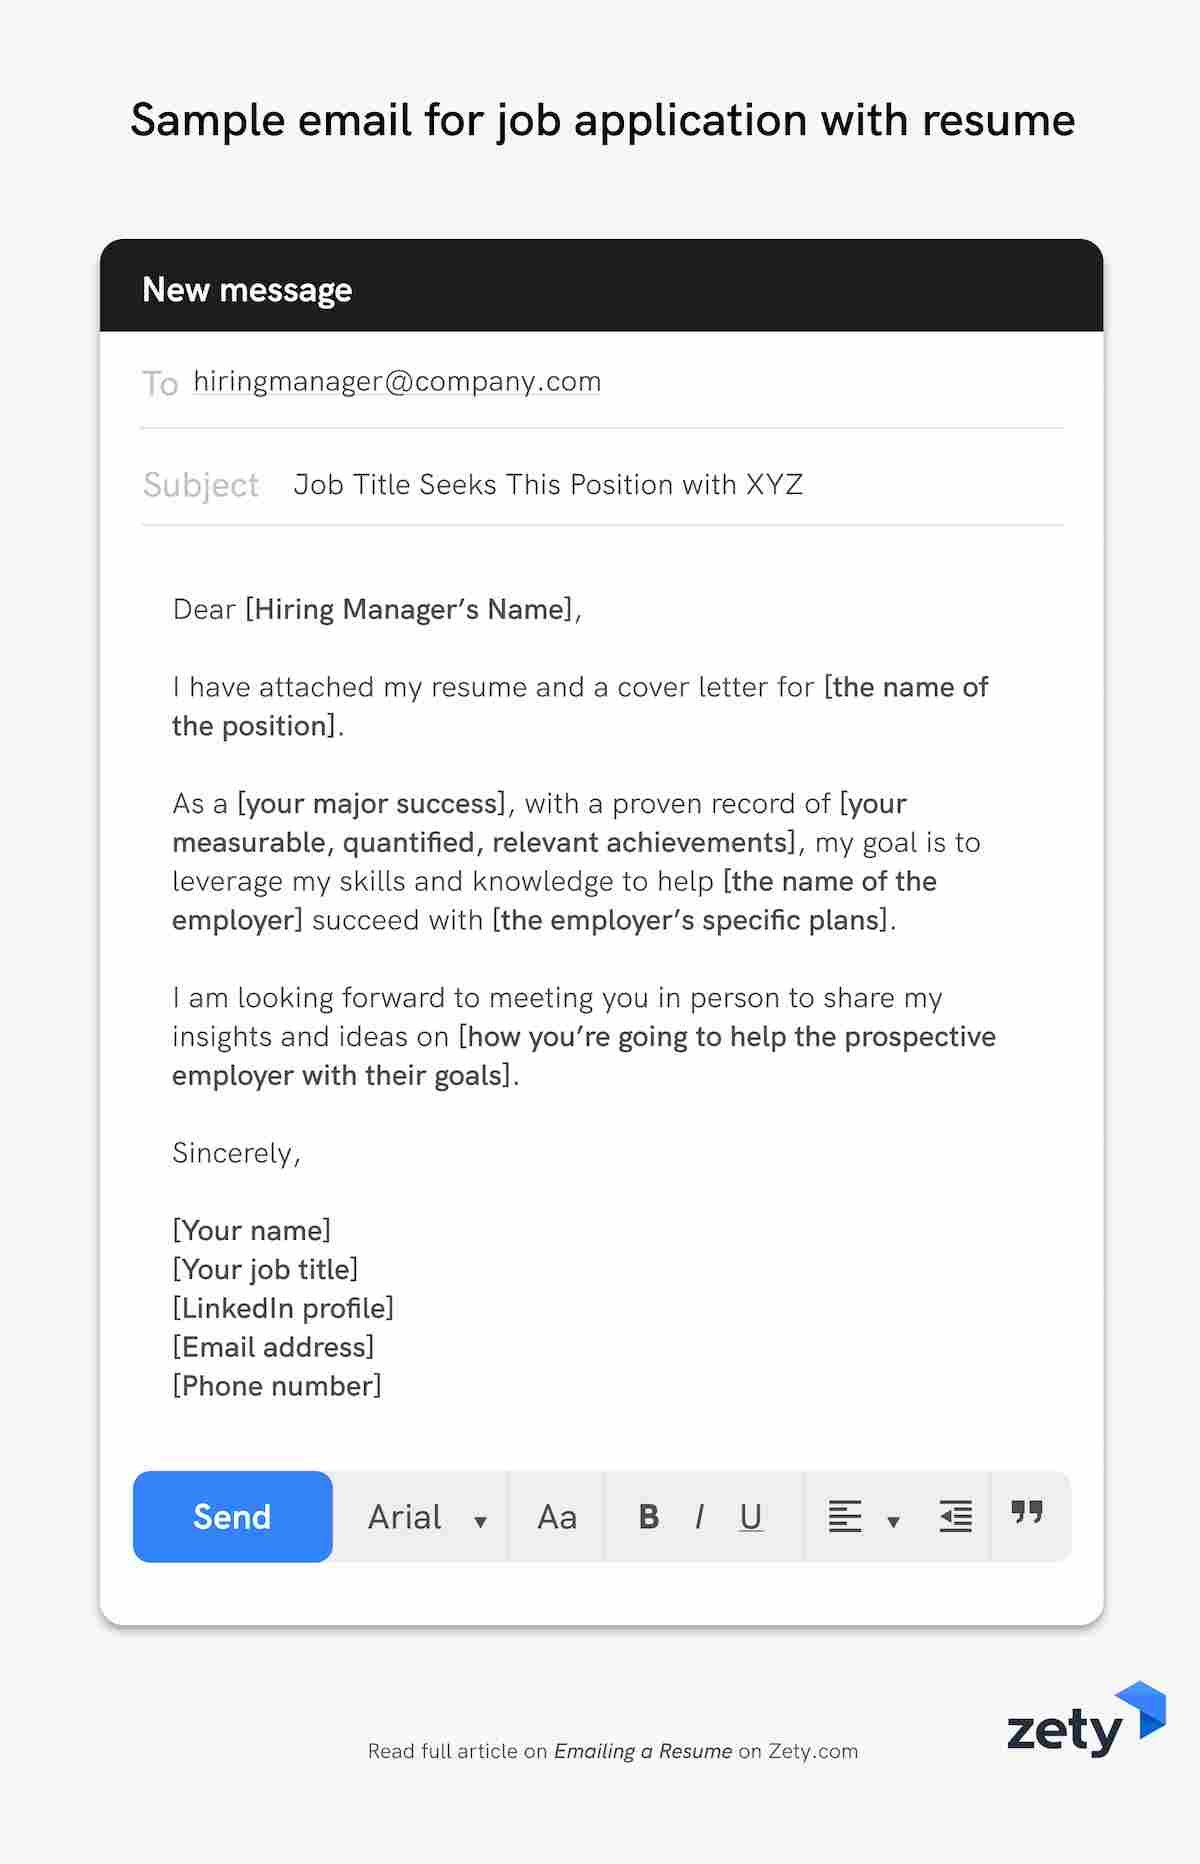 emailing resume job application email samples for submission sample with cmc template Resume Email For Resume Submission Samples